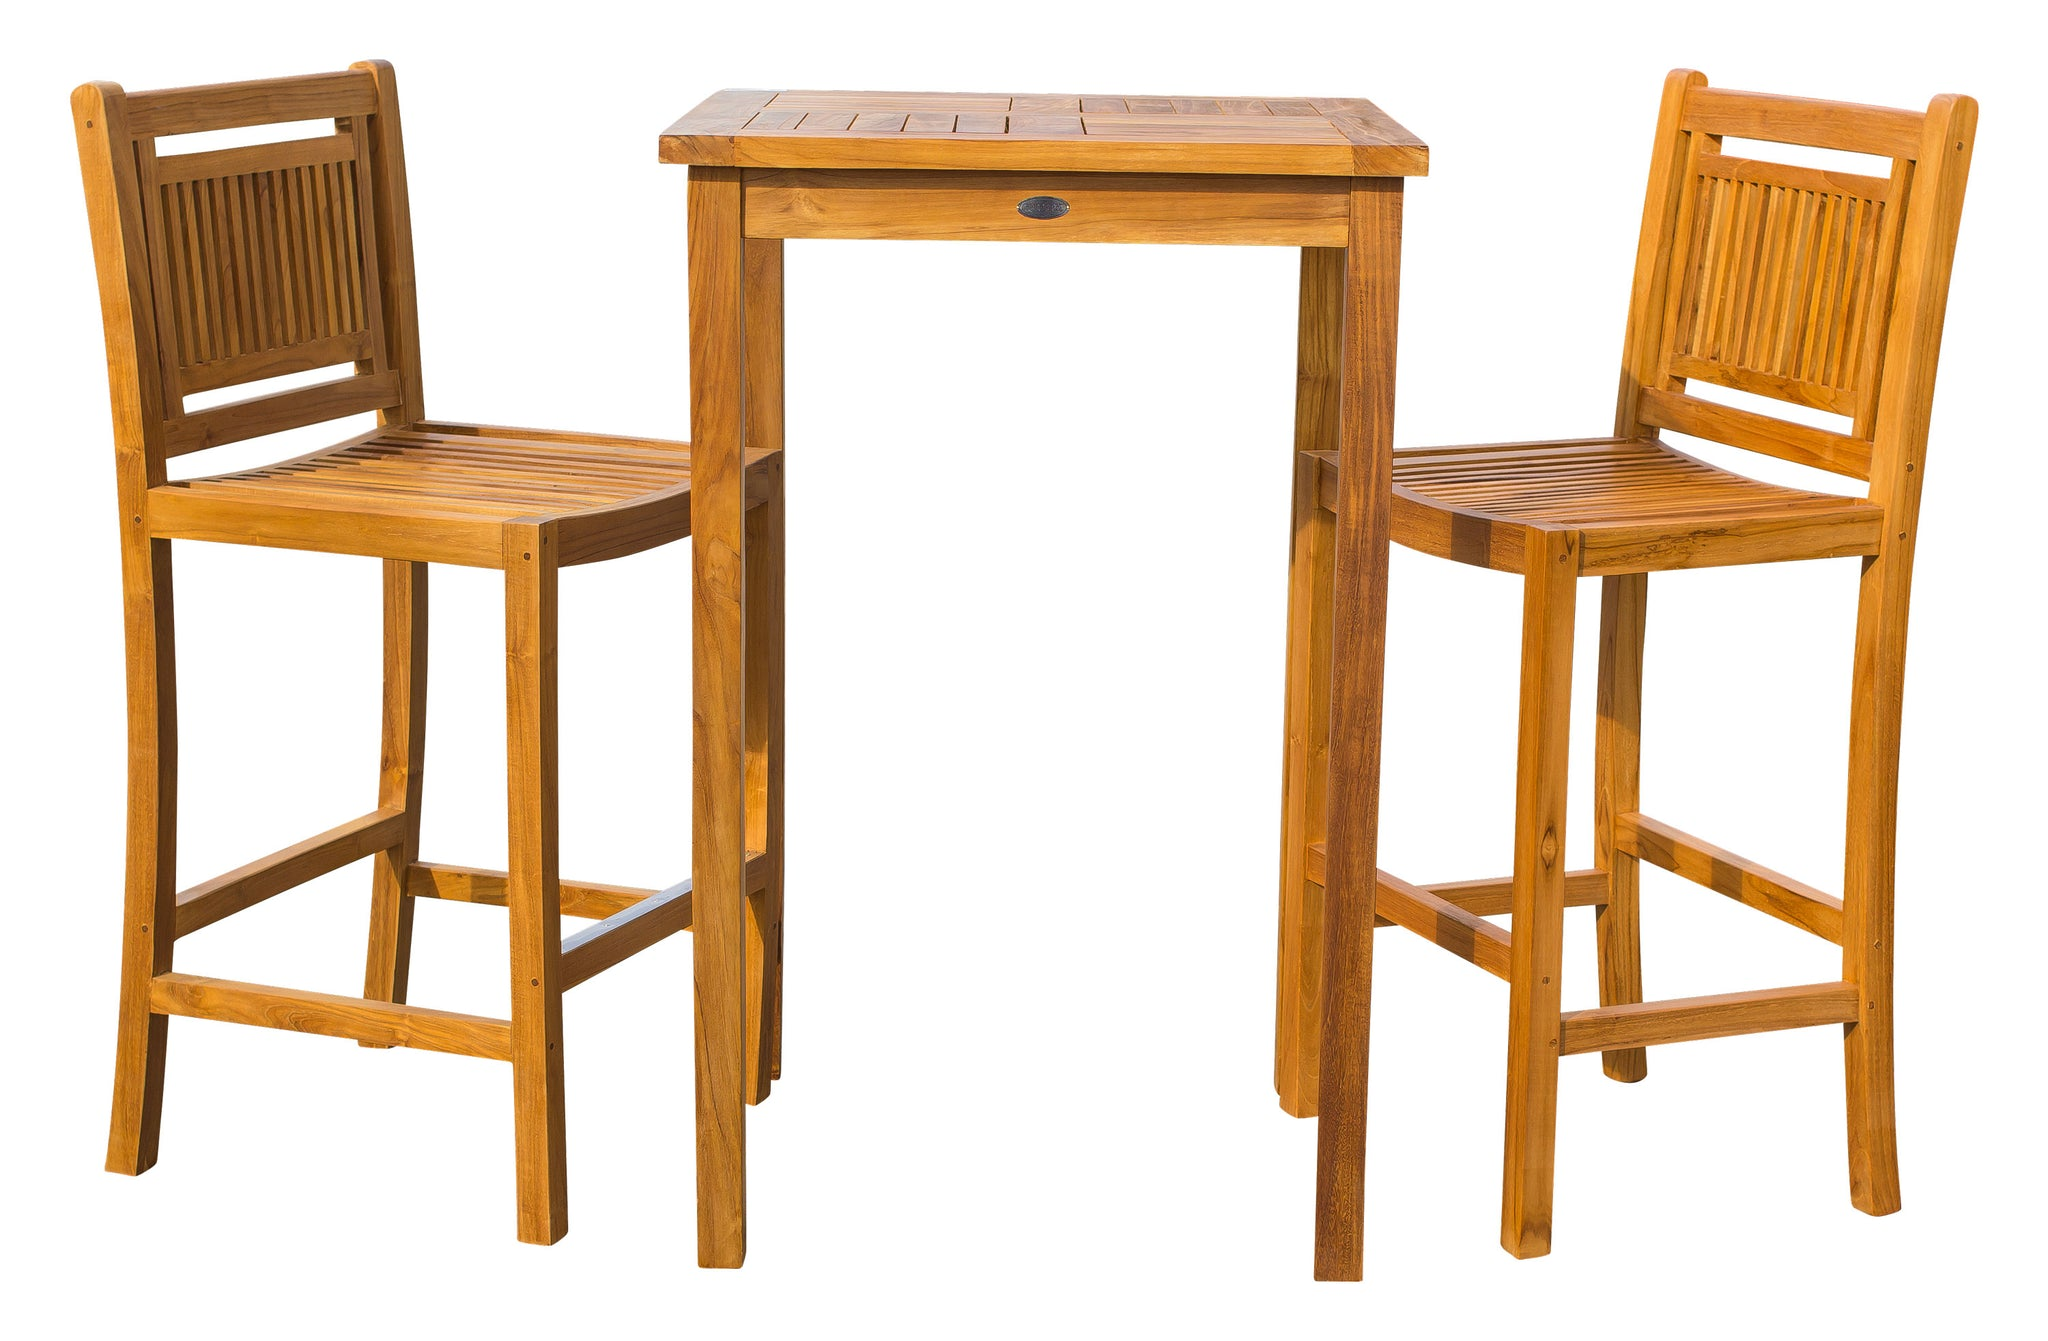 Picture of: 3 Piece Teak Wood Maldives Small Patio Bistro Bar Set With 27 Square La Place Usa Furniture Outlet